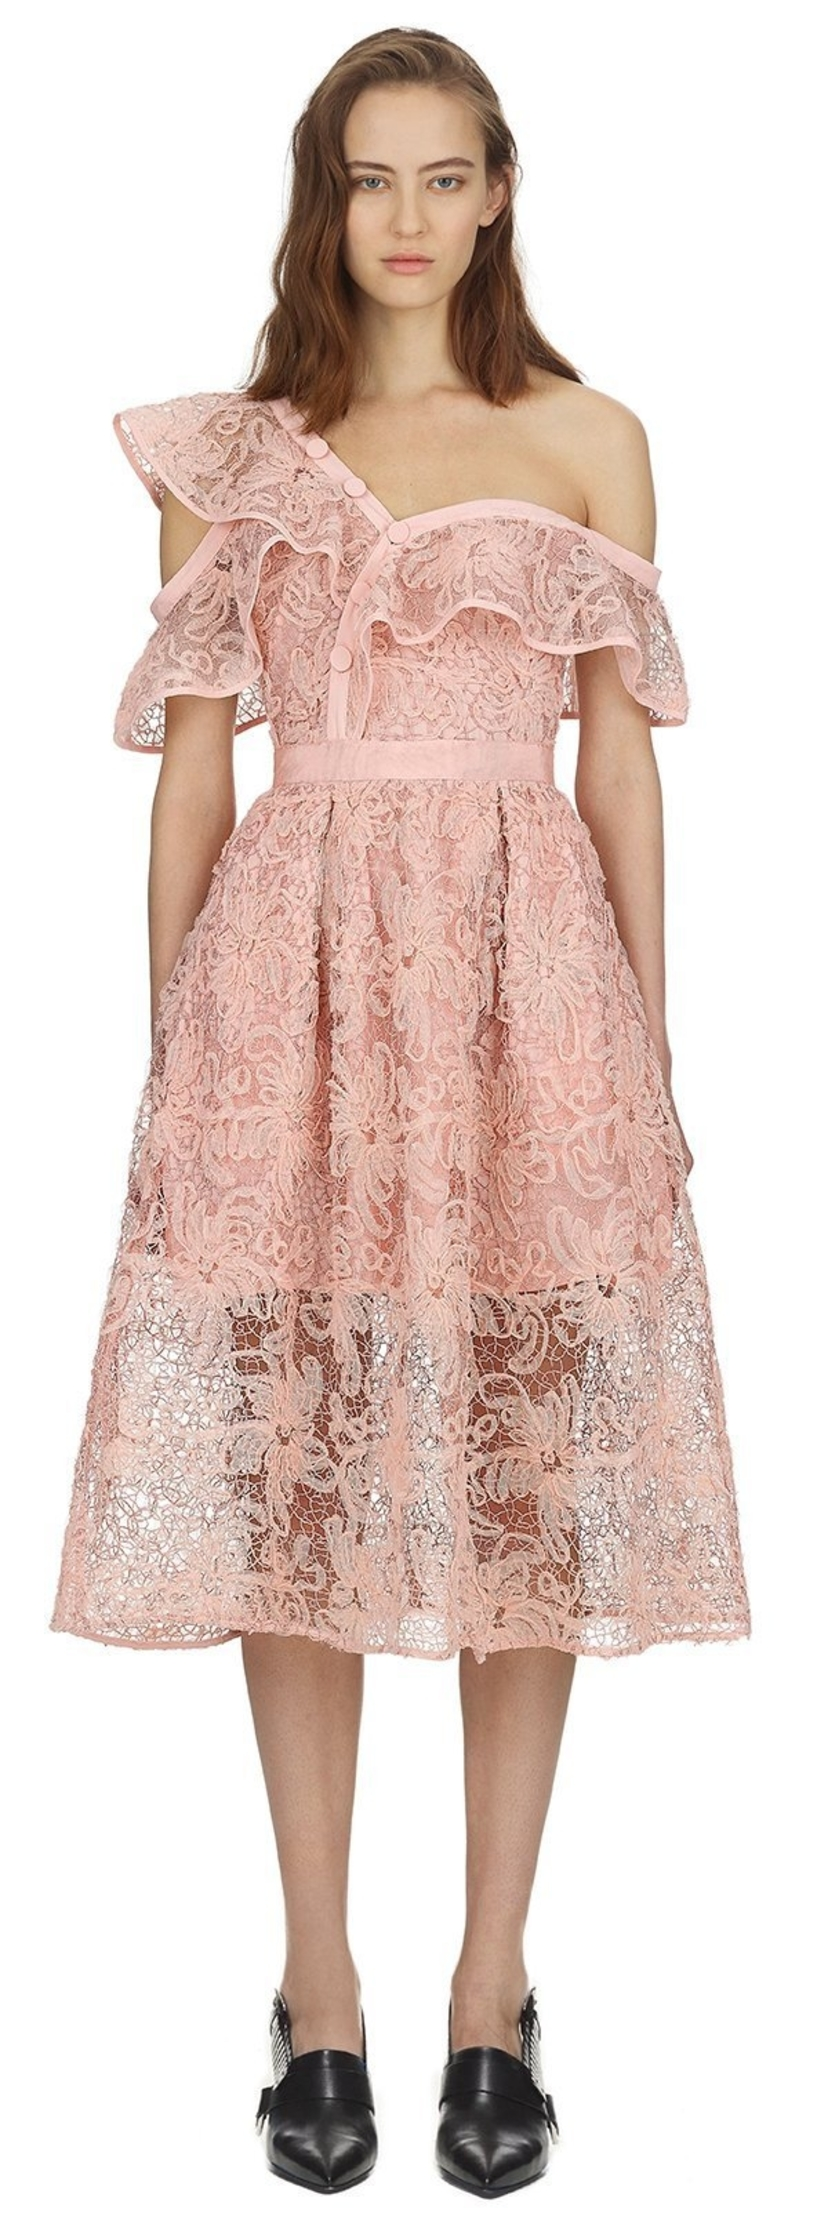 Self-Portrait Floral Lace Midi Dresses